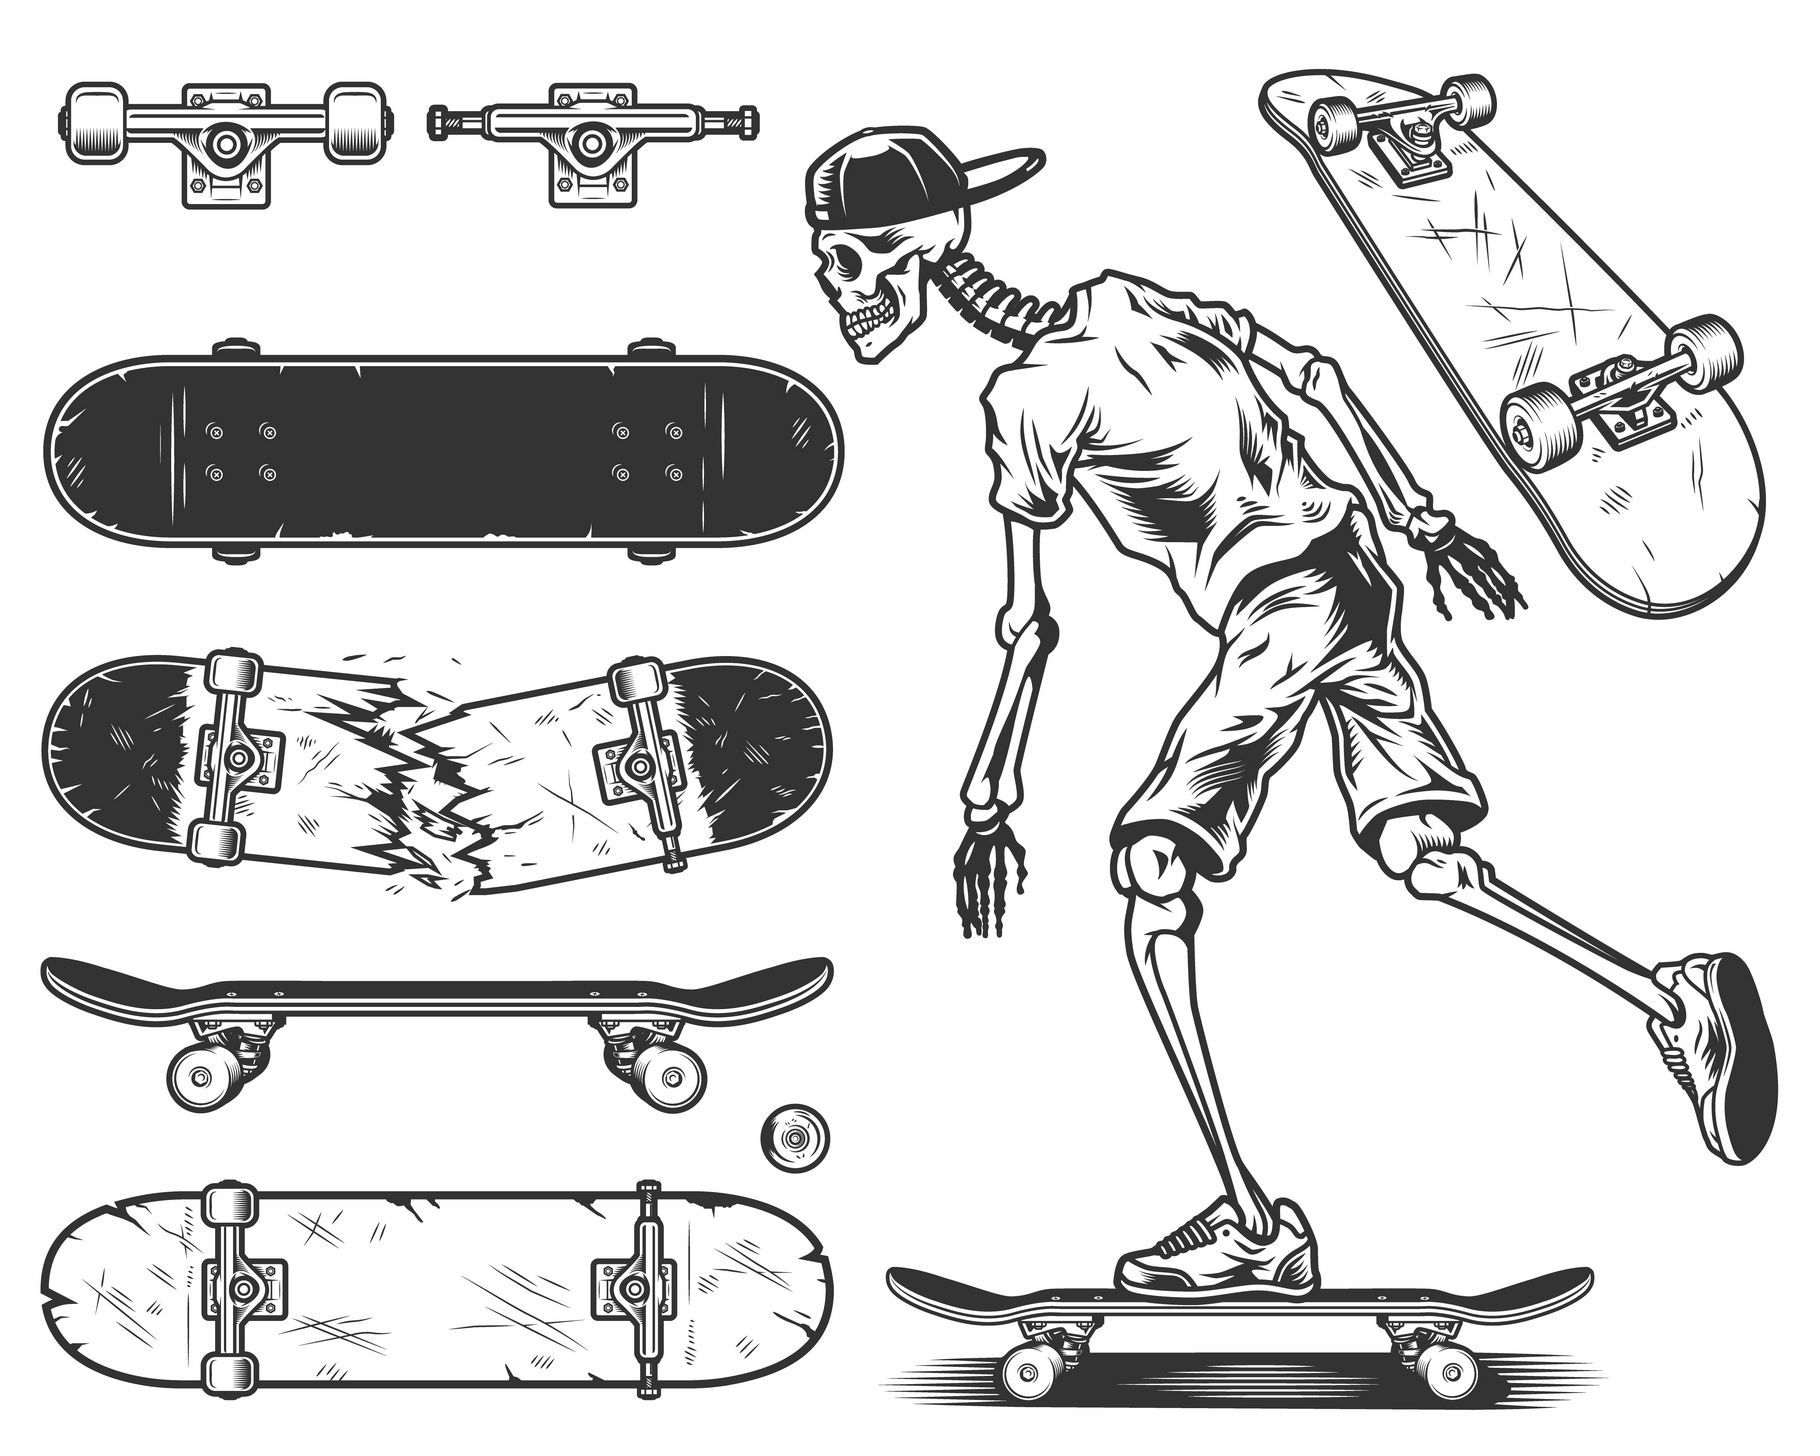 Classic Skateboard View From The Side Bottom And At An Angle Monochrome Contour Drawing Ad Sponsored View Side Classic Skateboard Tatueringsideer